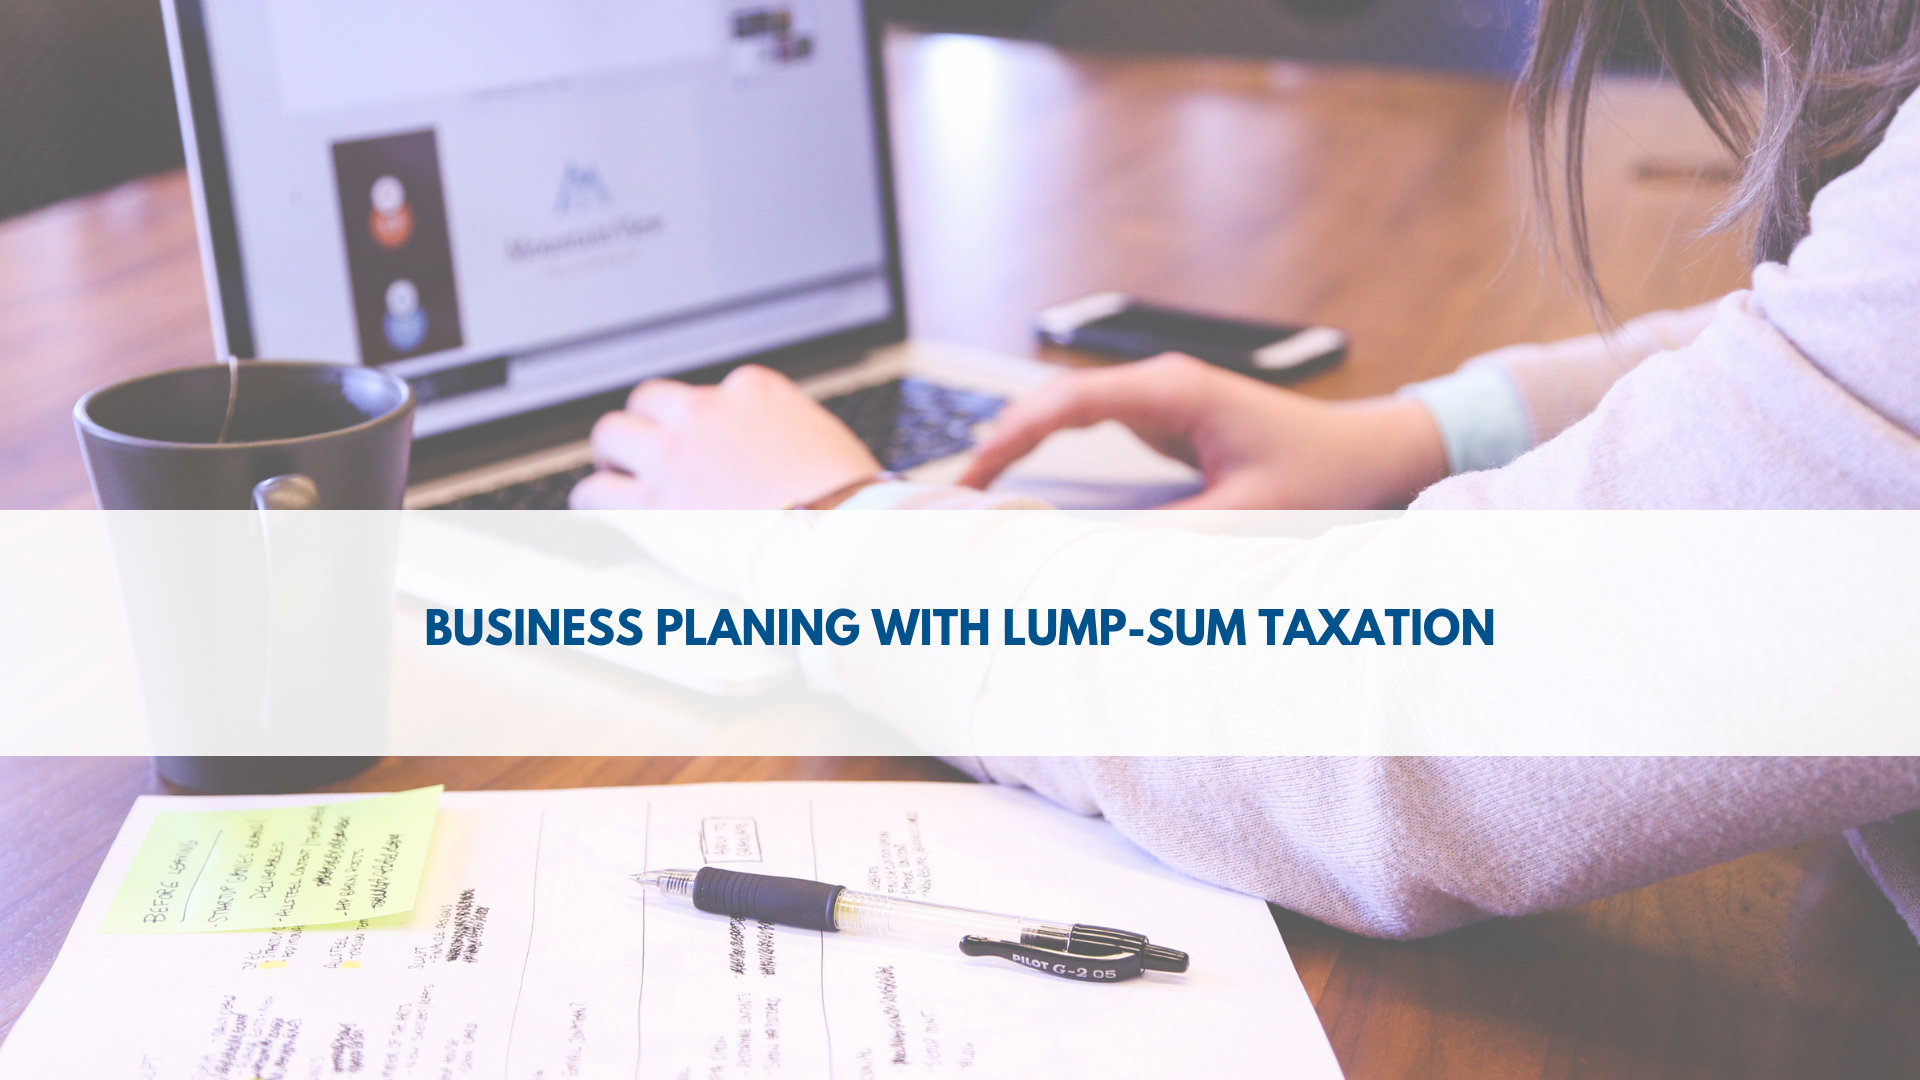 Business planing with lump-sum taxation